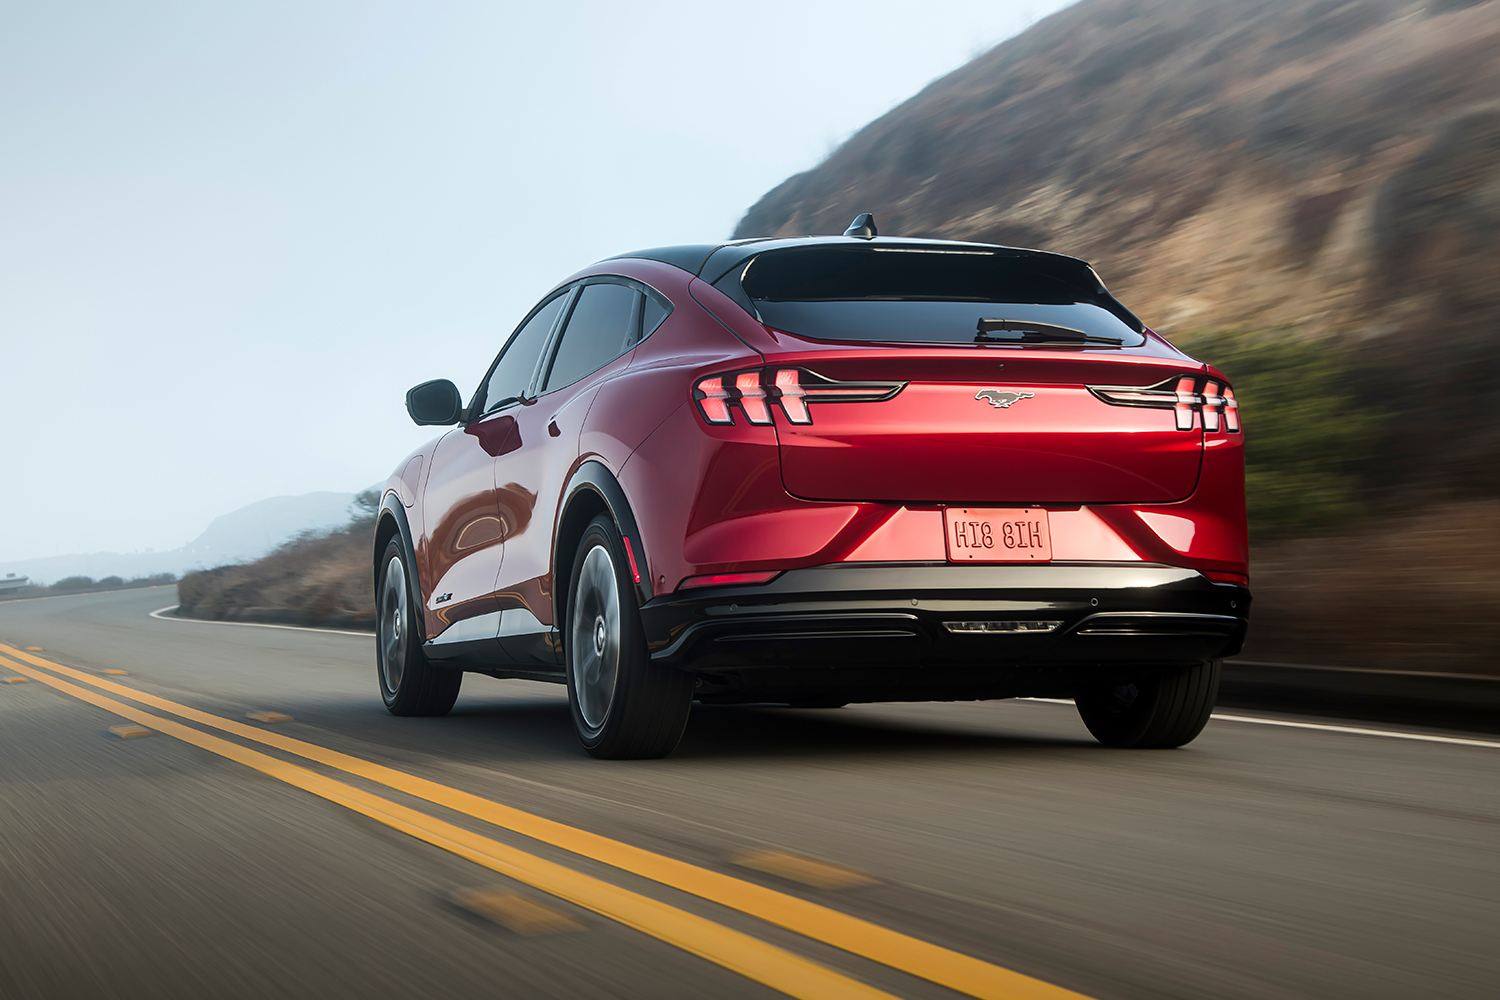 The rear end of a red Ford Mustang Mach-E driving down the road. Here's our review of the electric crossover.